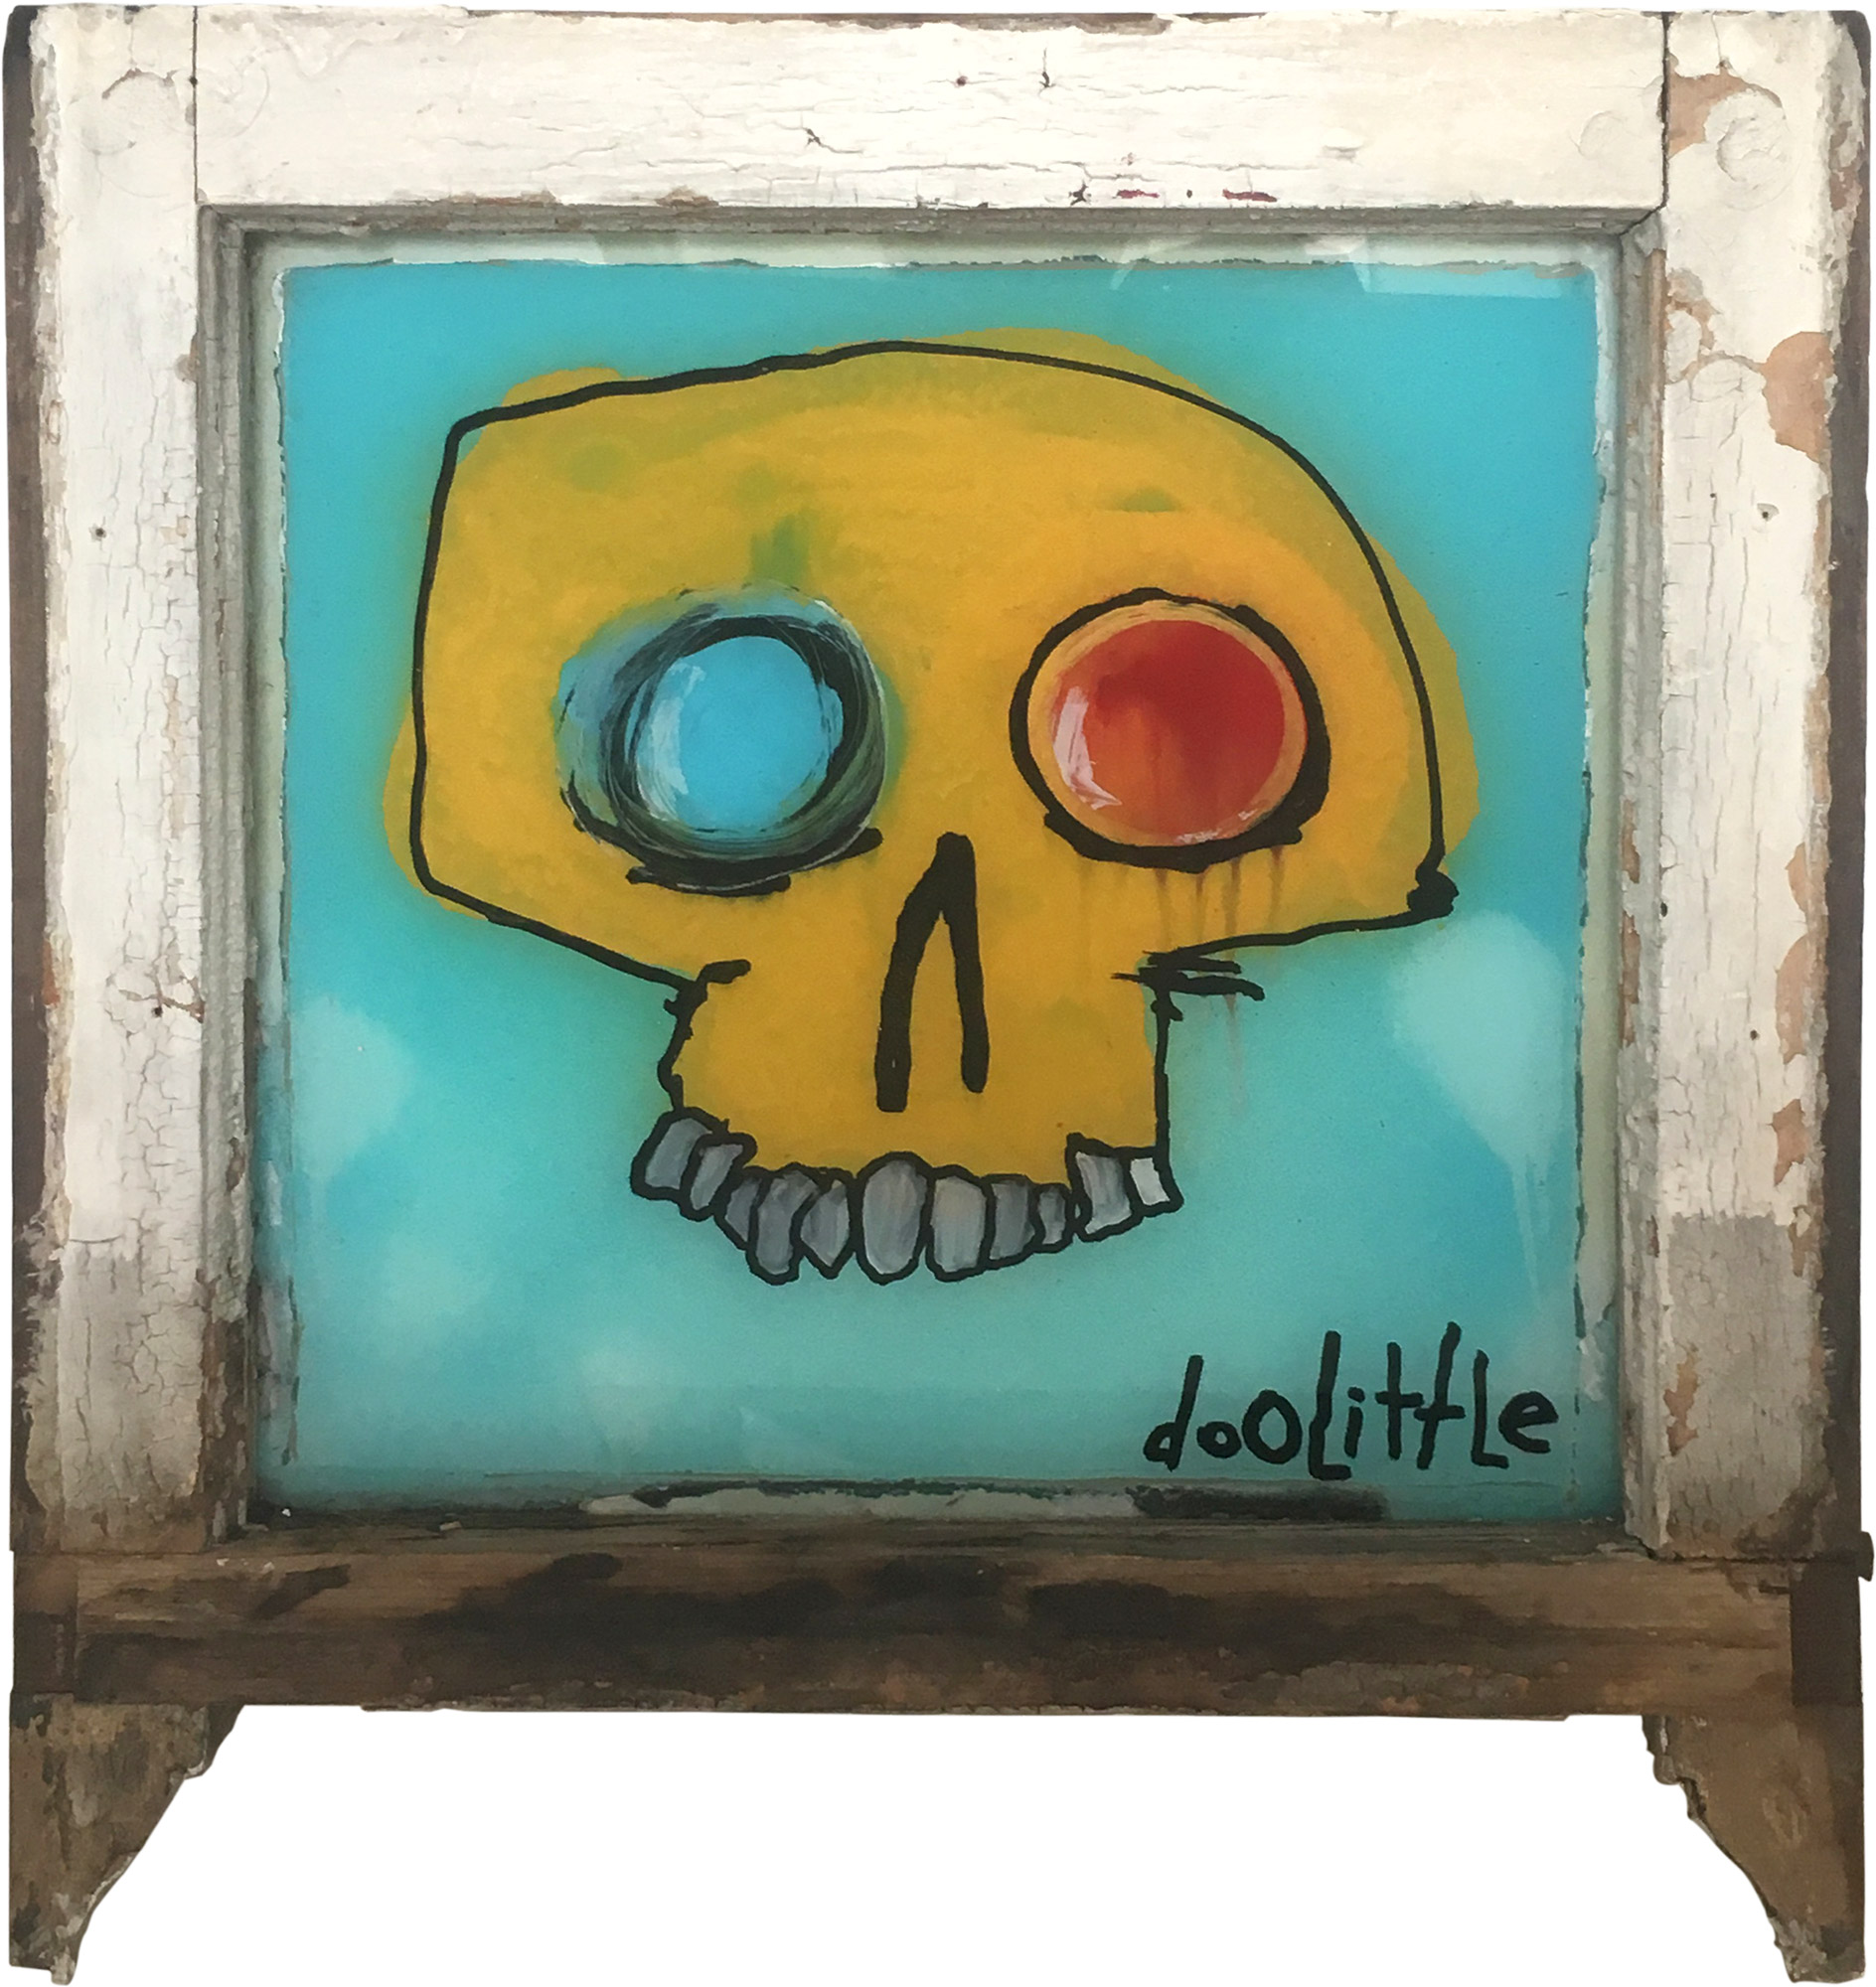 Doolittle Untitled